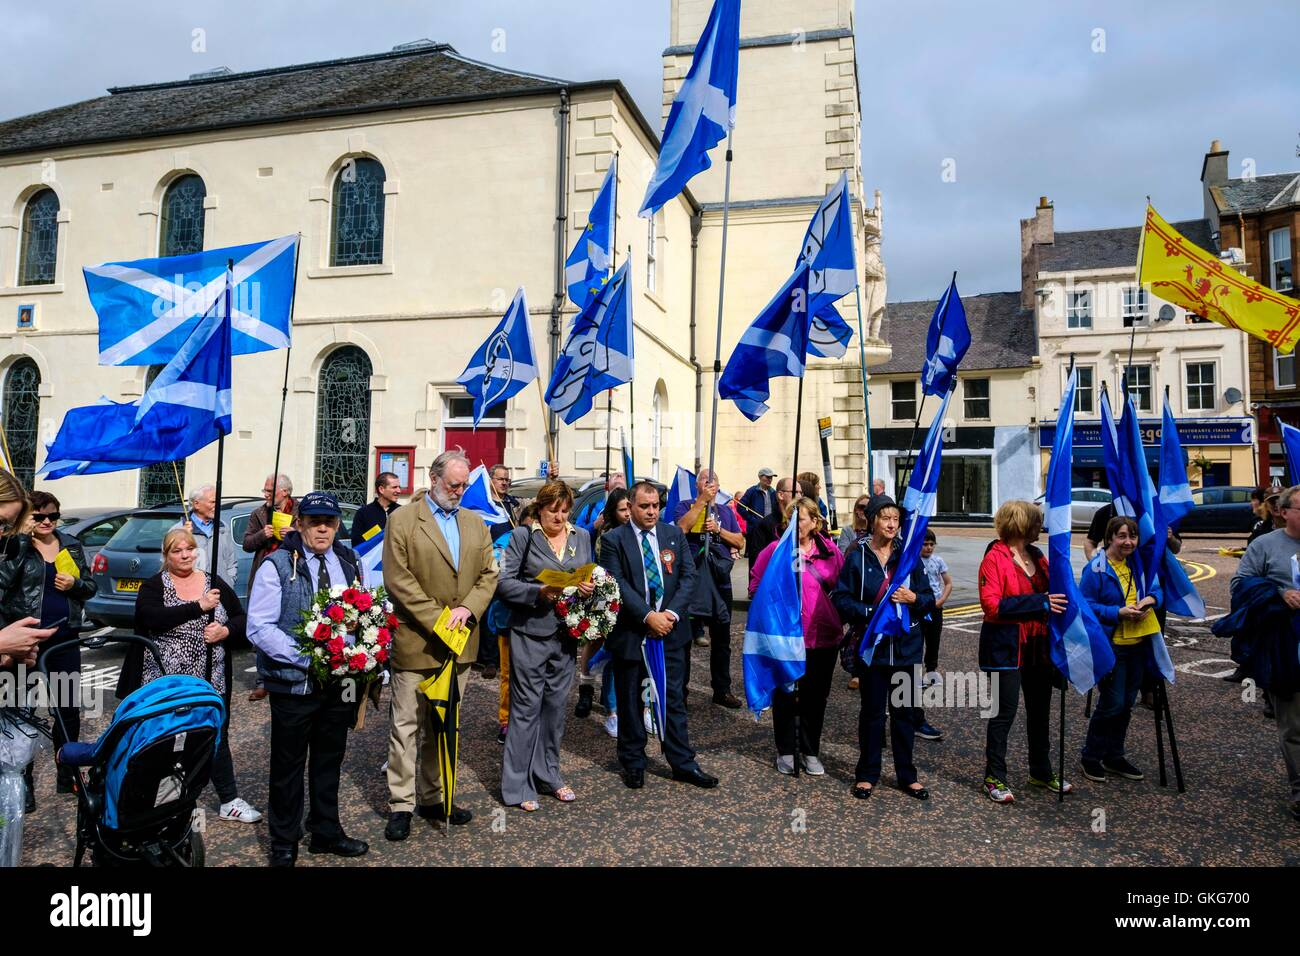 Lanark, Scotland, UK 20th August 2016   A march and ceremony to commemorate the death of Scottish Hero William Wallace - Stock Image